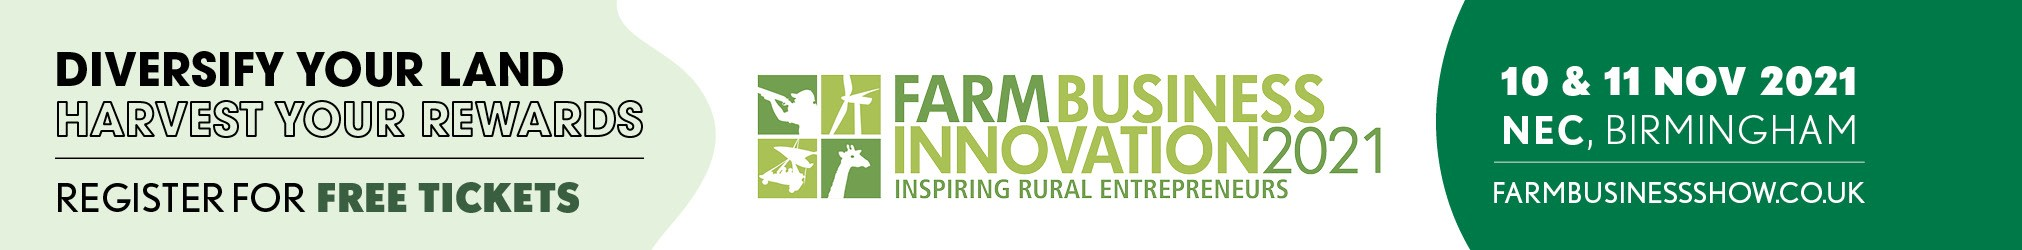 Farm business innovation show at the NEC in Birmingham banner